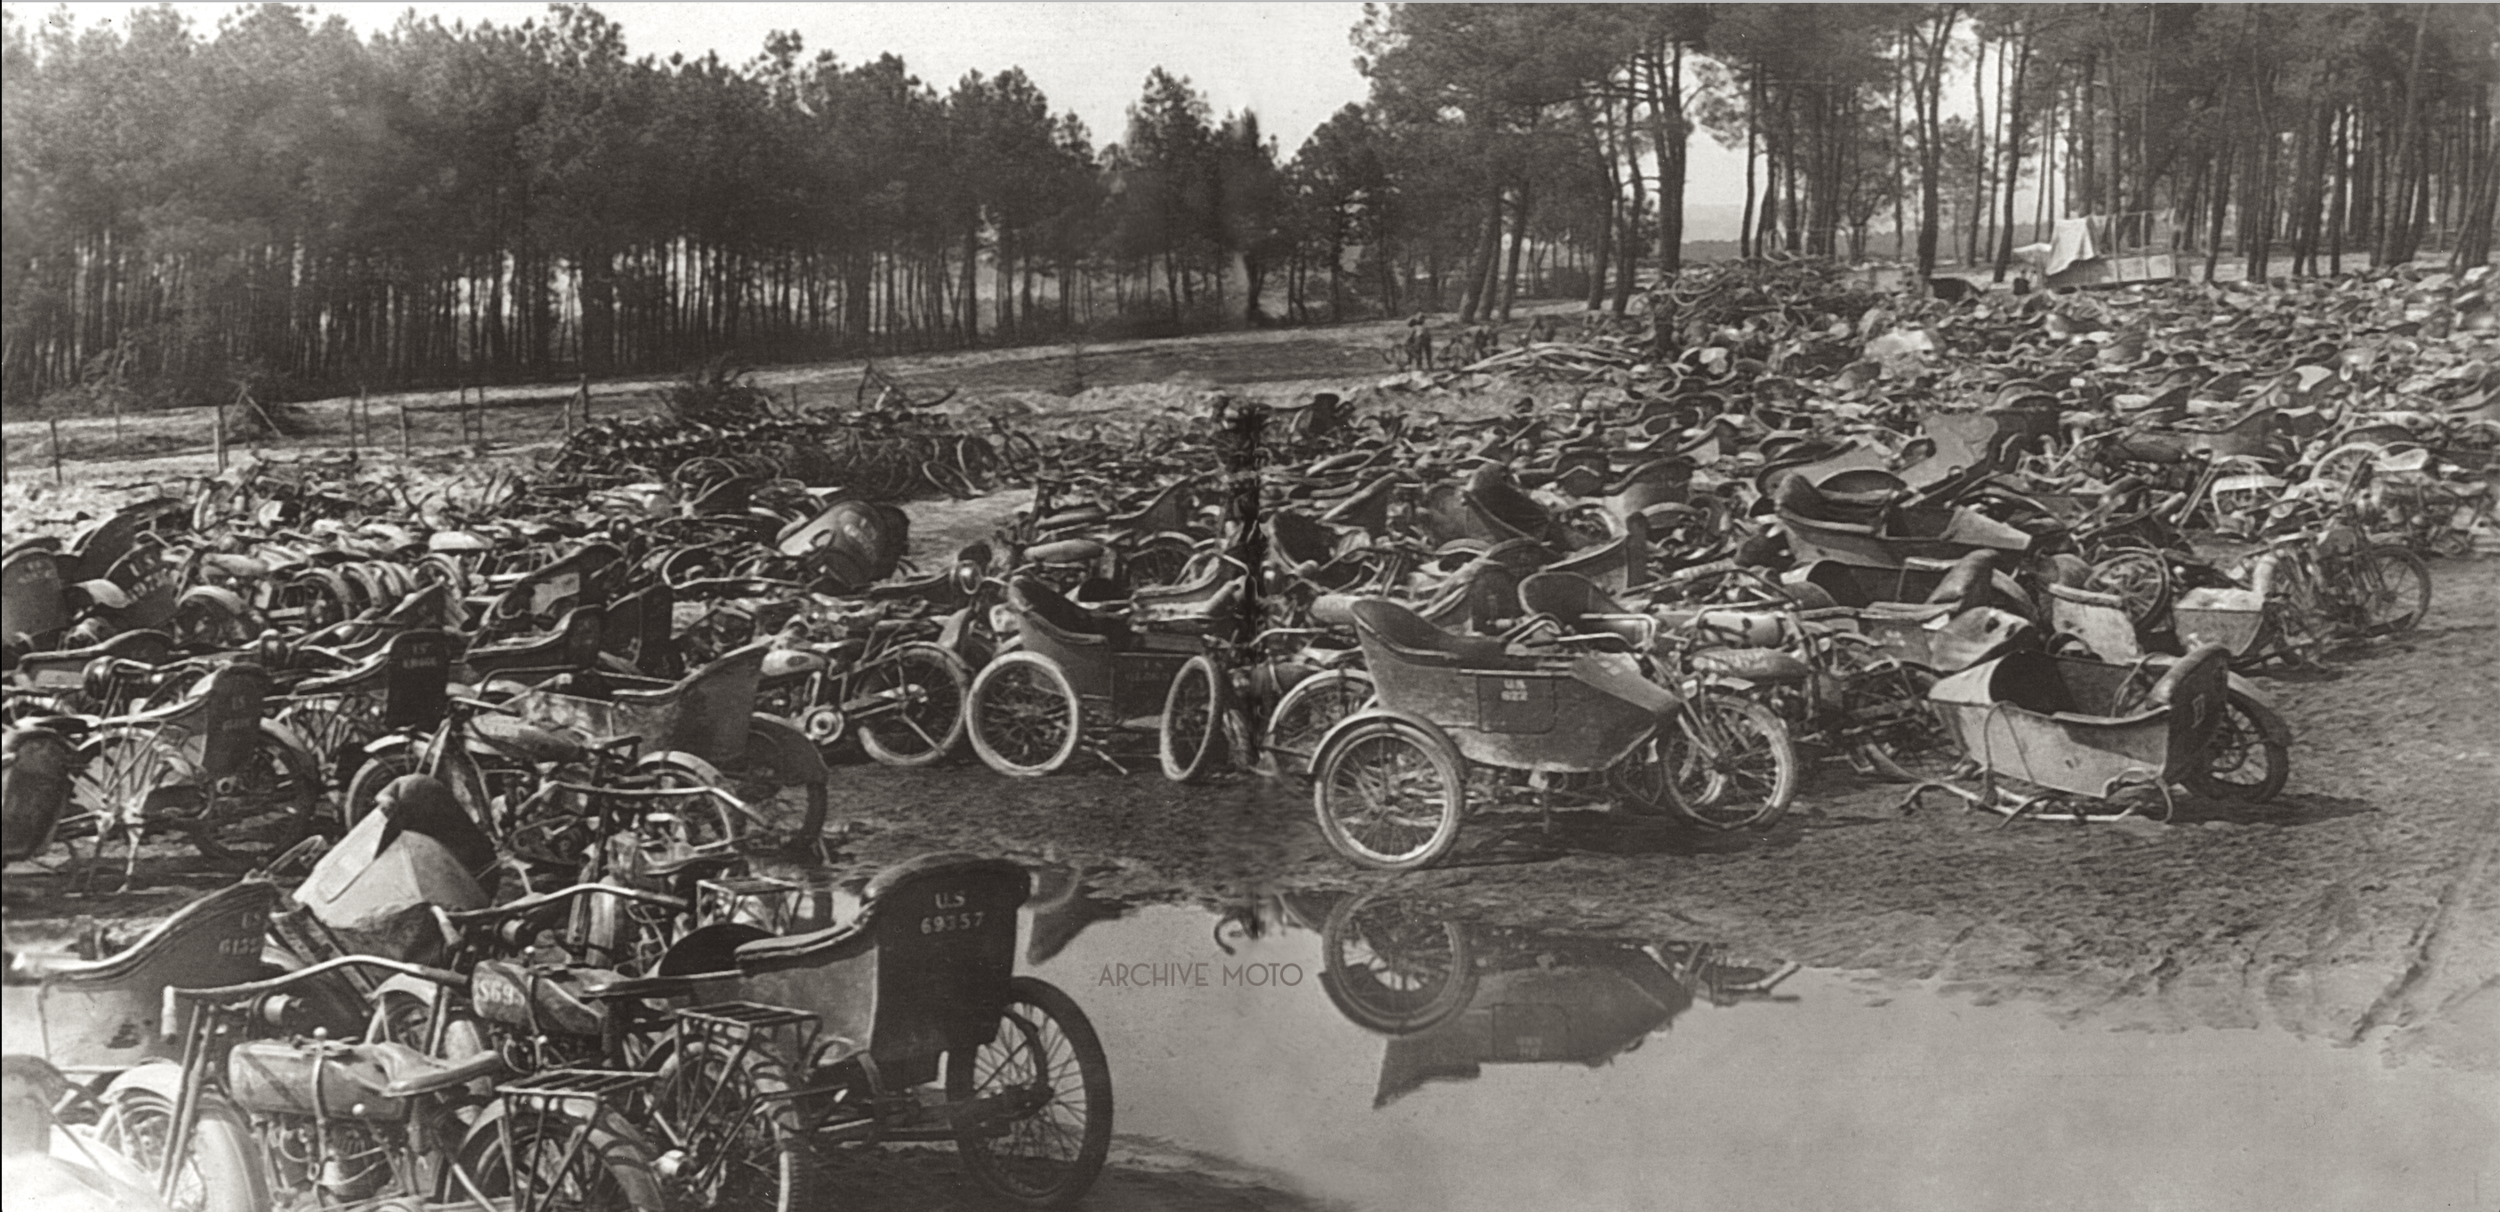 After the Treaty of Versailles was signed on June 28, 1919, the tens-of-thousands of American motorcycles, which had flooded onto the battlefields of Belgium, Germany, and France during WWI were collected for scrap or private sale. Countless mechanical boneyards like this one managed by the US Army Corps of Engineers in Le Mans, France were established to deal with countless damaged and surplus machines. Though it no comparison, the scene of so many abandoned and disabled machines heaped in a muddy French field resonates the mass destruction of such a terrible affair, a war that truly changed the world.